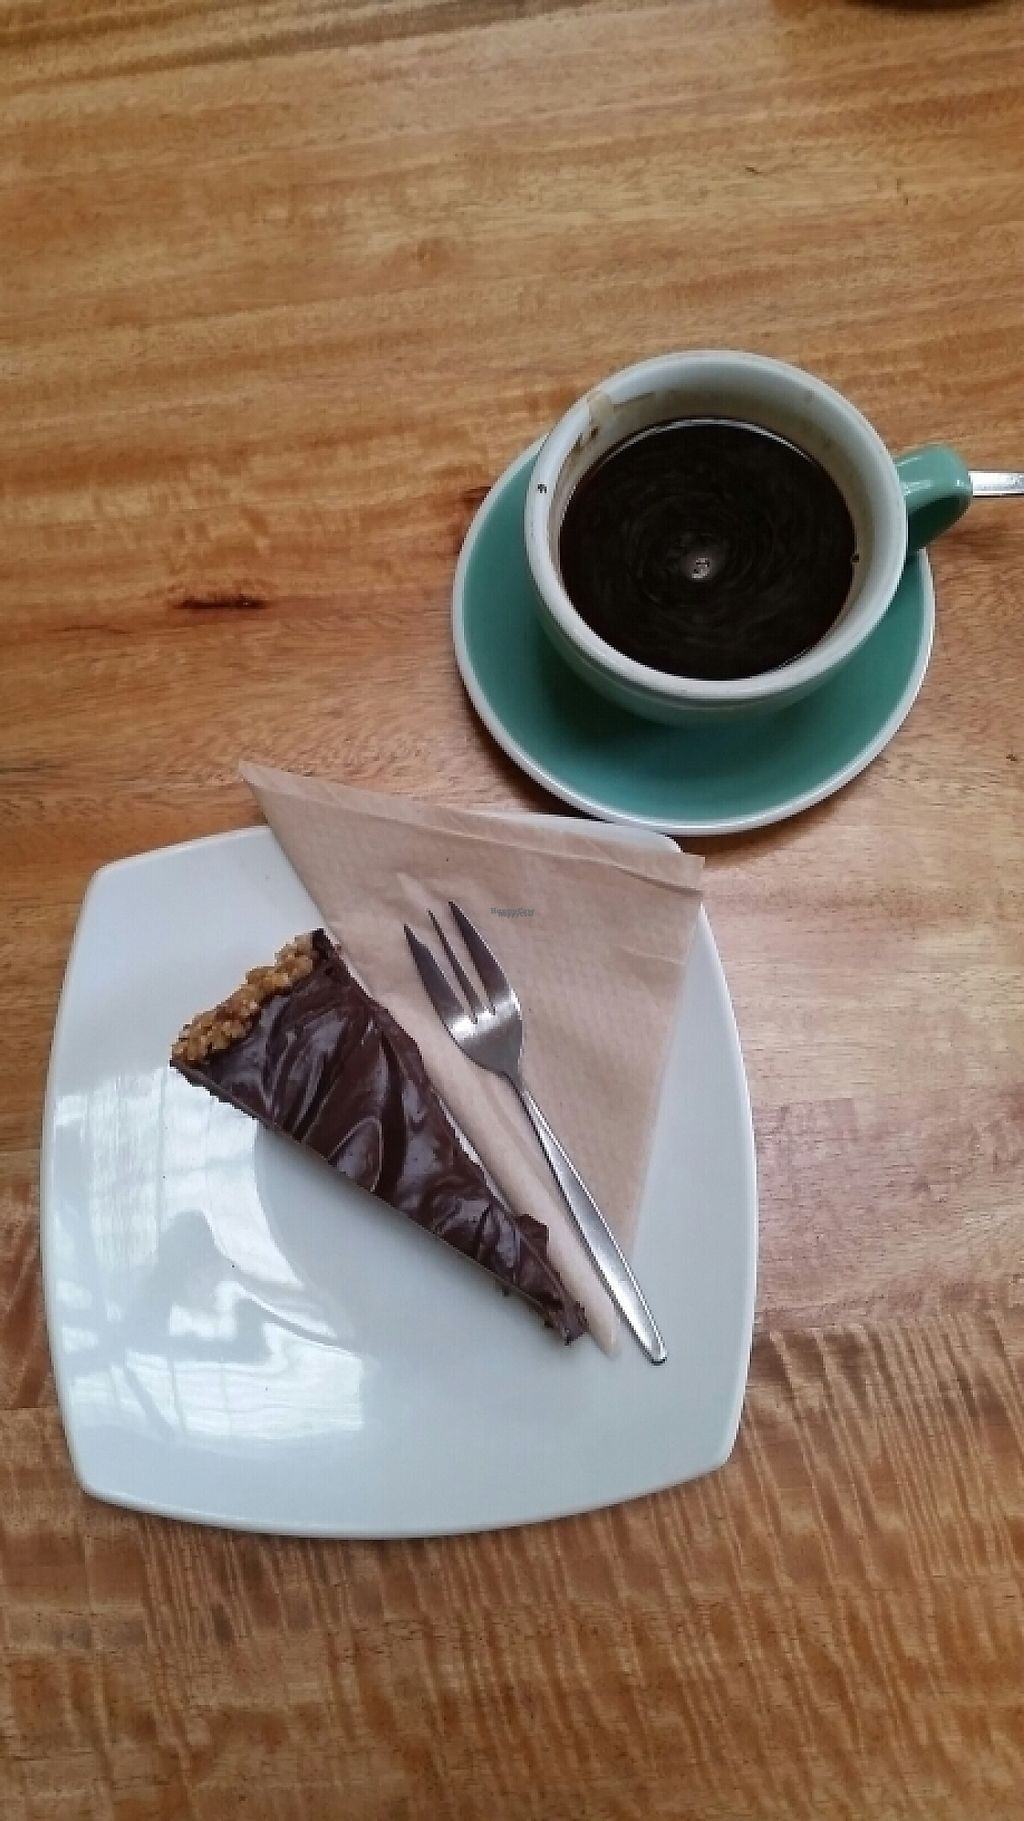 "Photo of Cornucopia Organics  by <a href=""/members/profile/AndyTheVWDude"">AndyTheVWDude</a> <br/>Vegan Chocolate & Avo Tart ~Taste Cafe <br/> March 23, 2017  - <a href='/contact/abuse/image/27264/239993'>Report</a>"